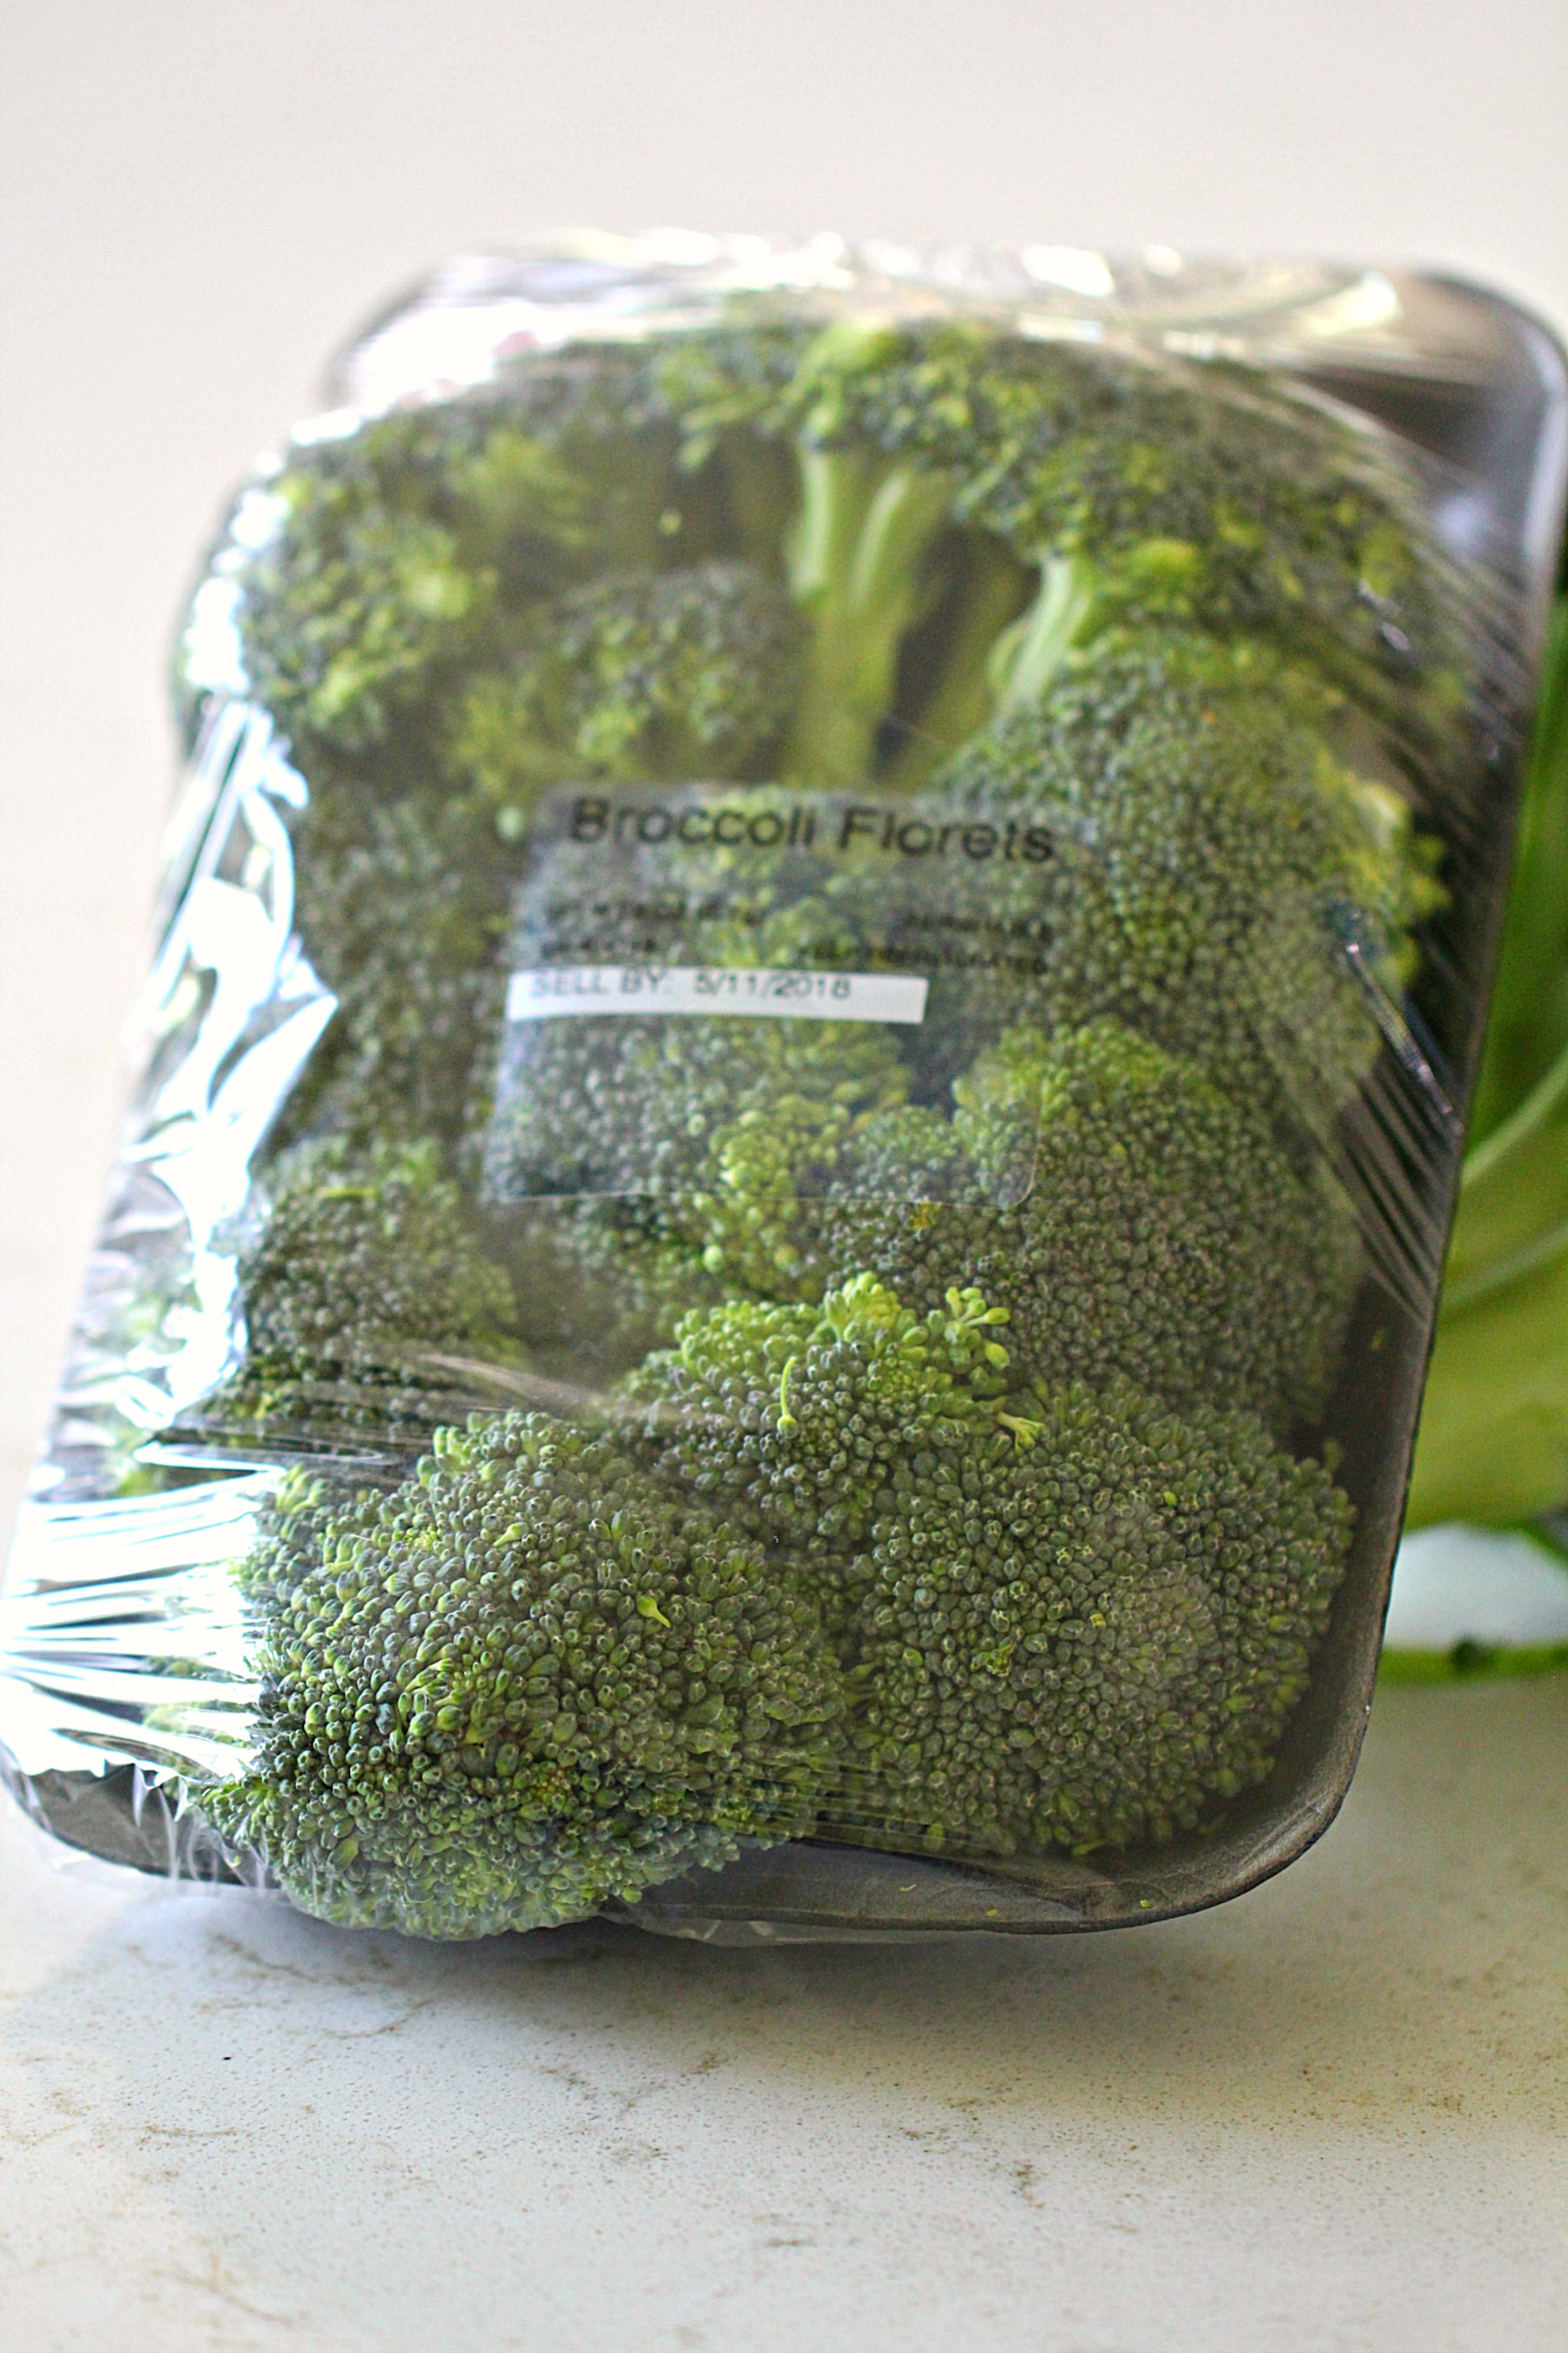 Packaged broccoli florets